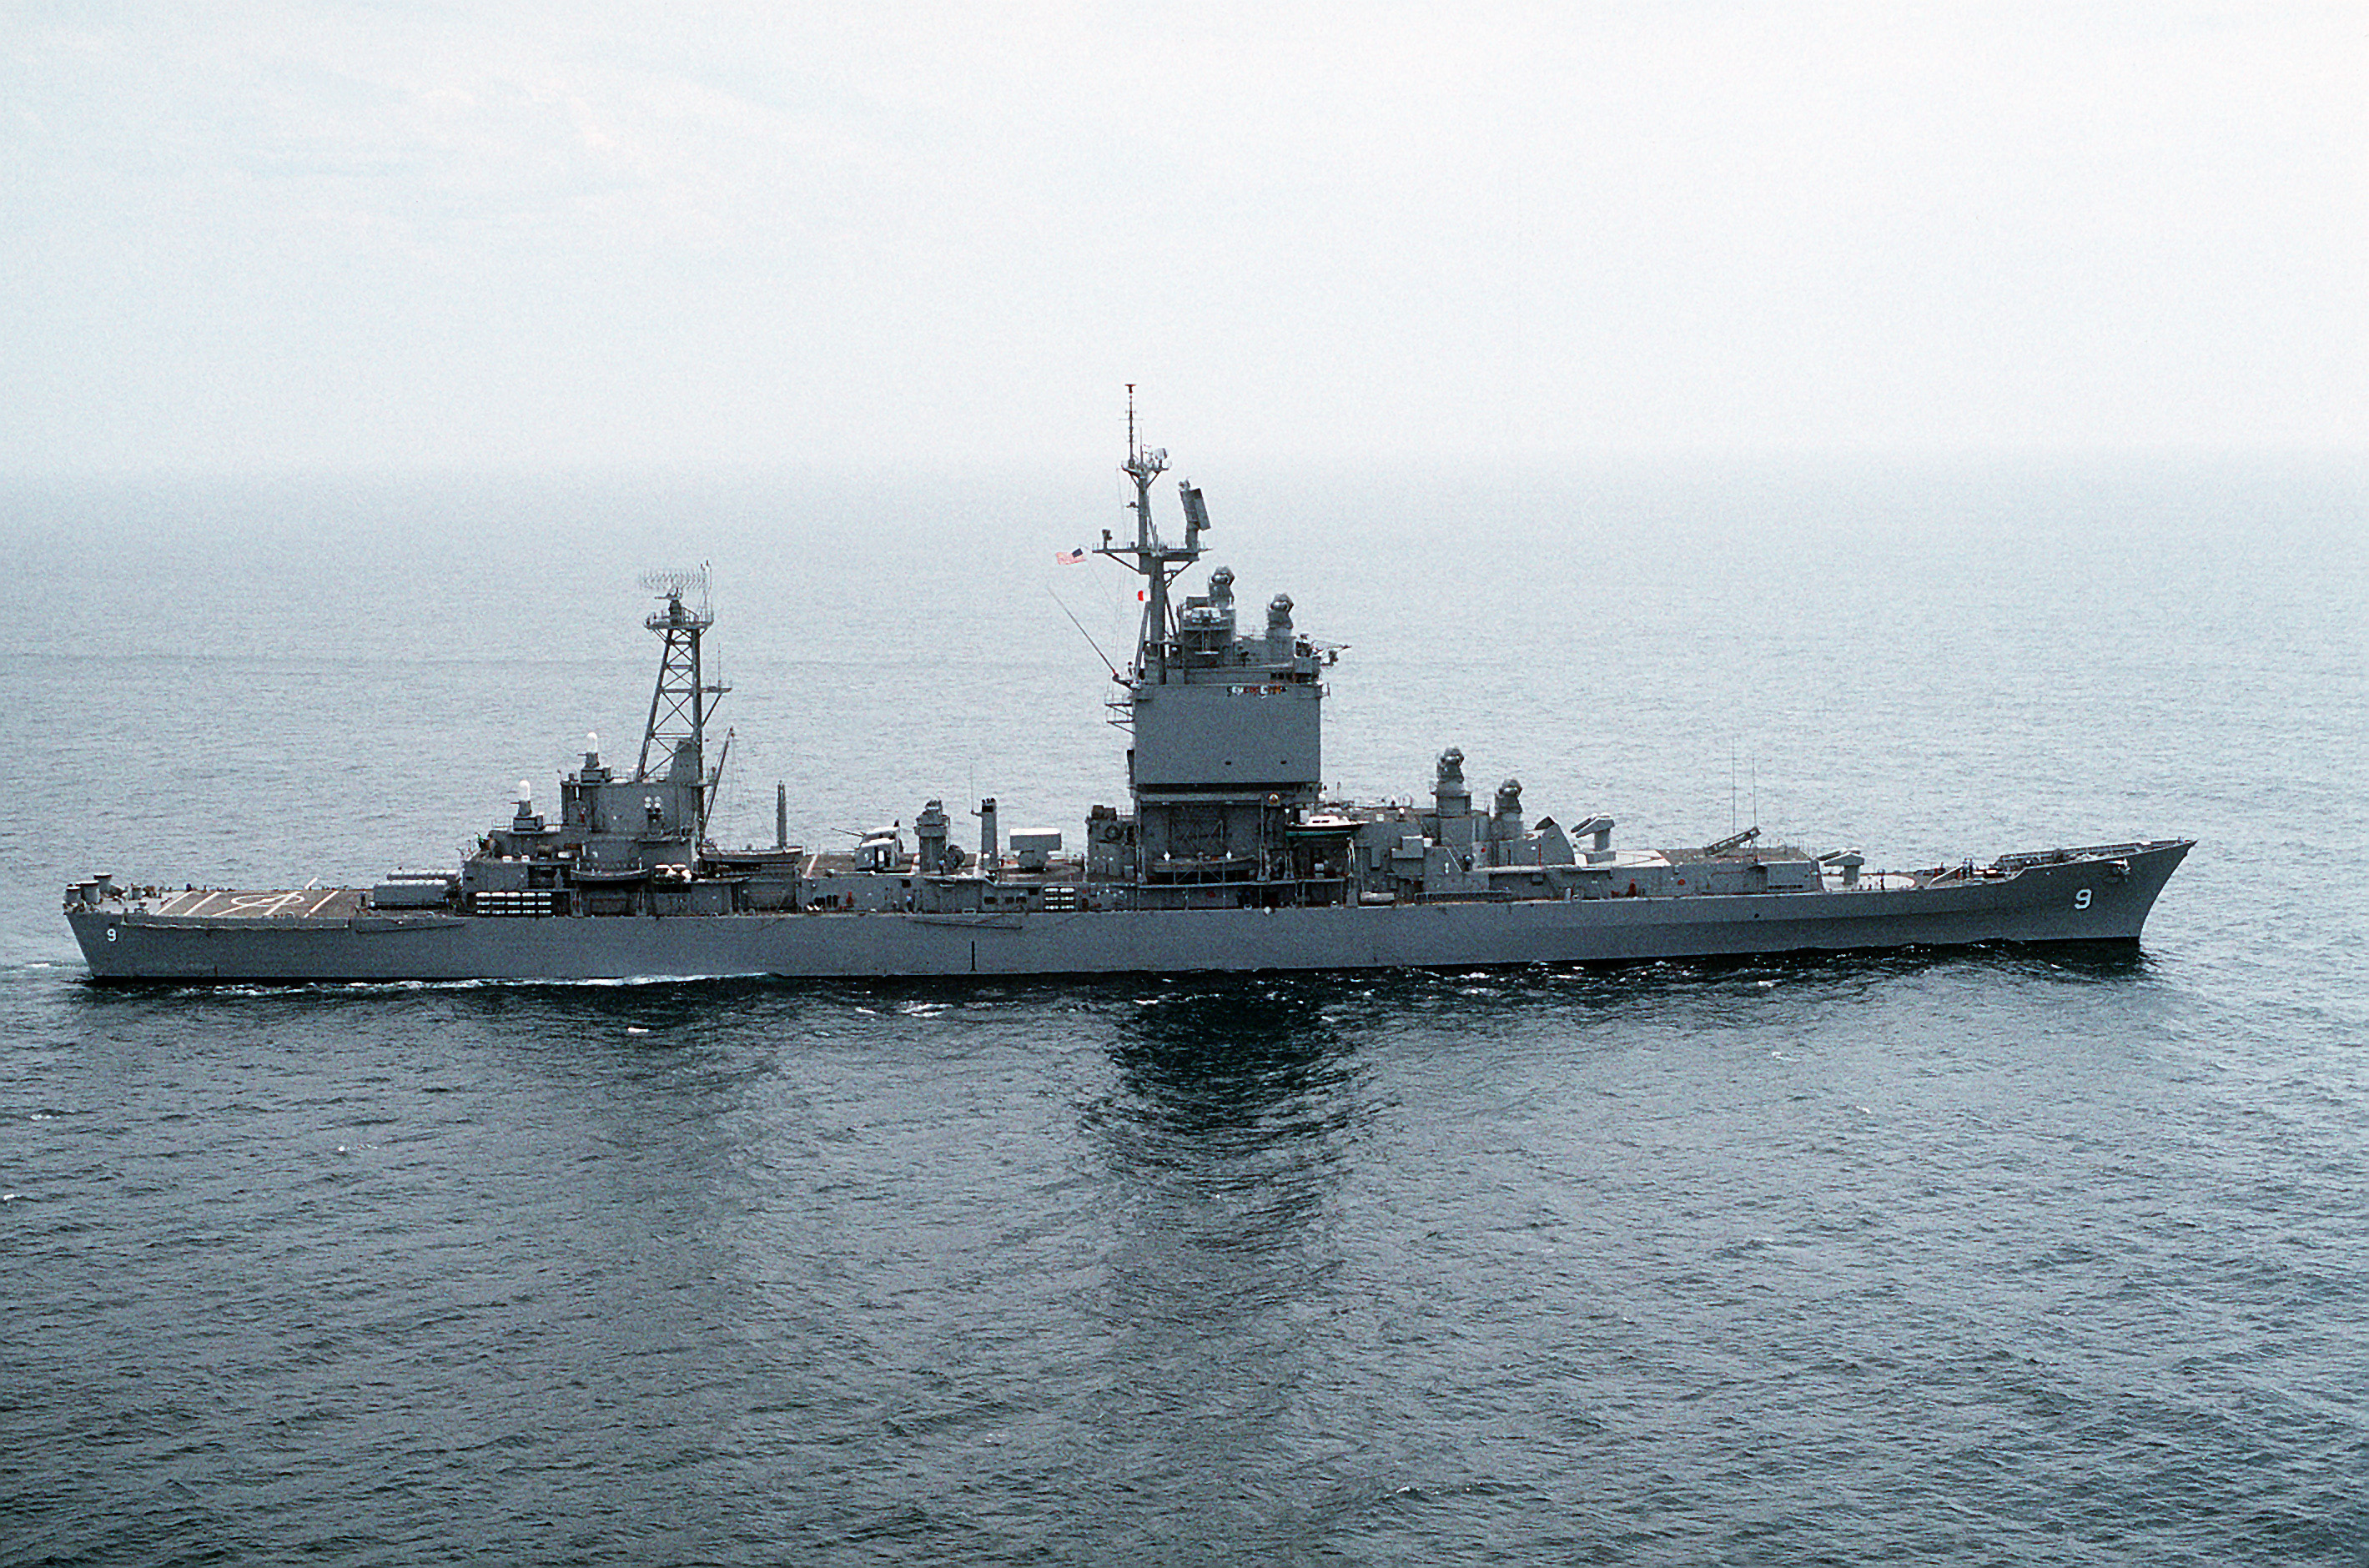 USS_Long_Beach_(CGN-9)_stbd_beam_view.jp